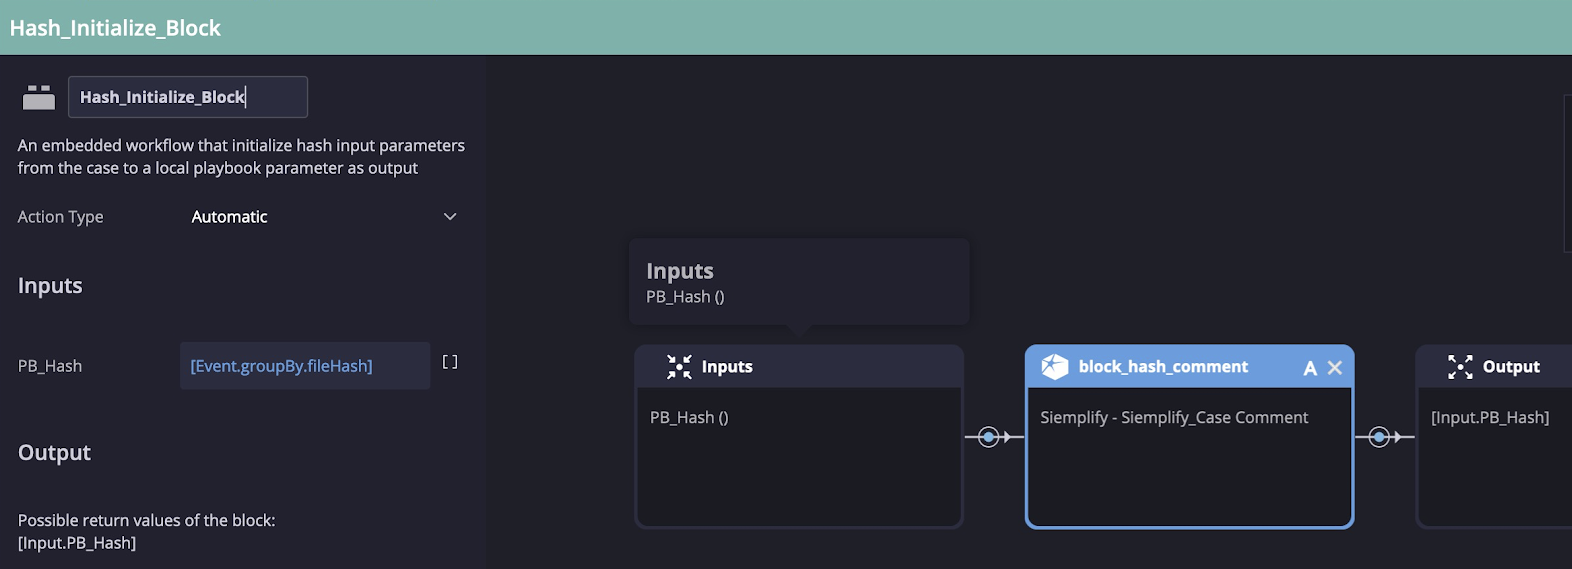 Initialize the input block for the Logz.io playbook for Siemplify